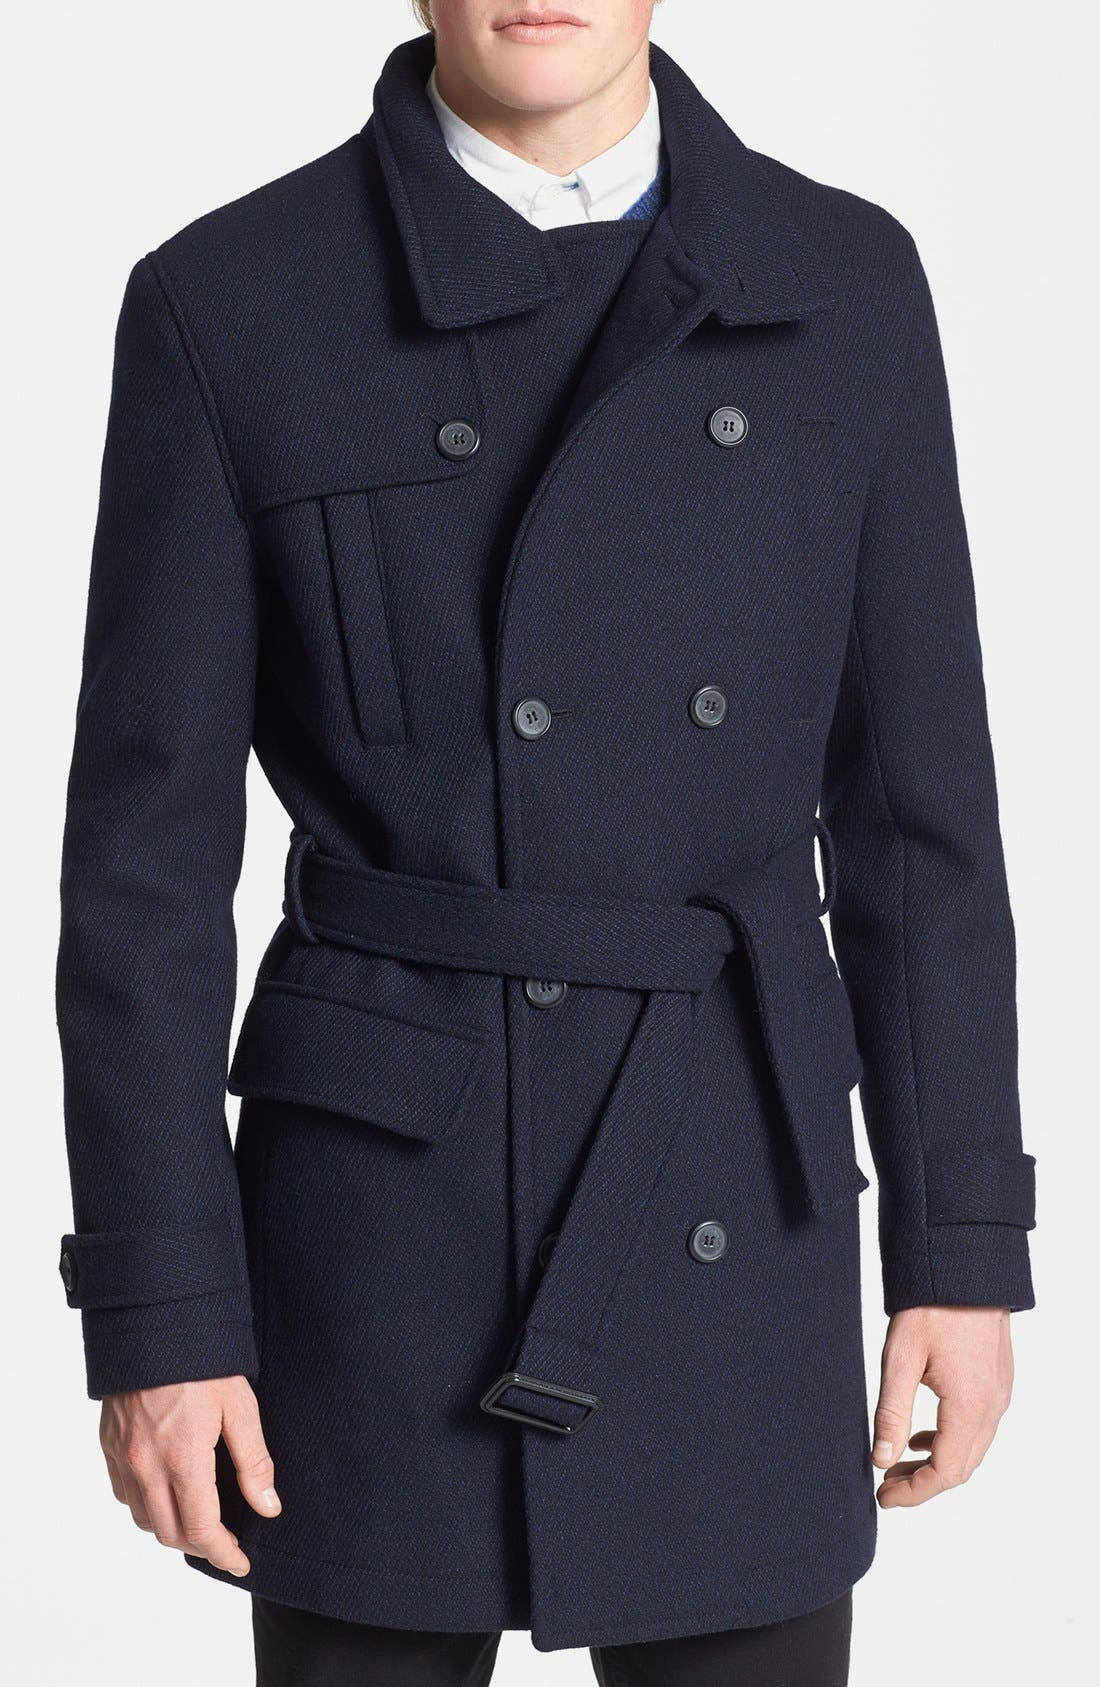 Double Breasted Wool Blend Trench Coat,                             Main thumbnail 1, color,                             410